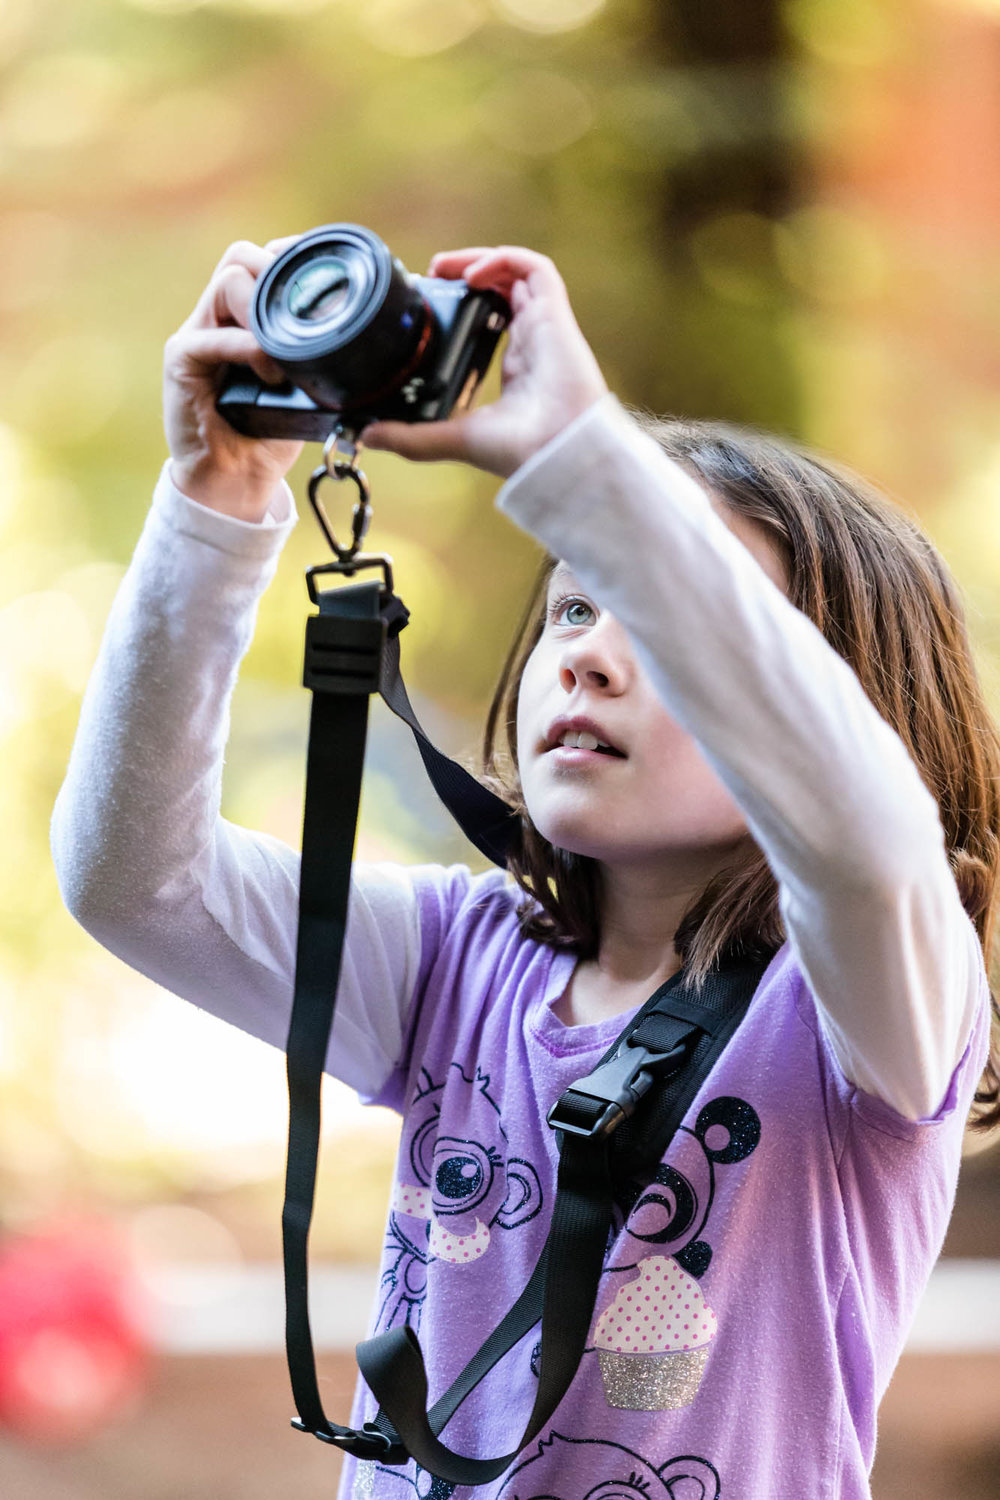 young girl taking a photo with a camera